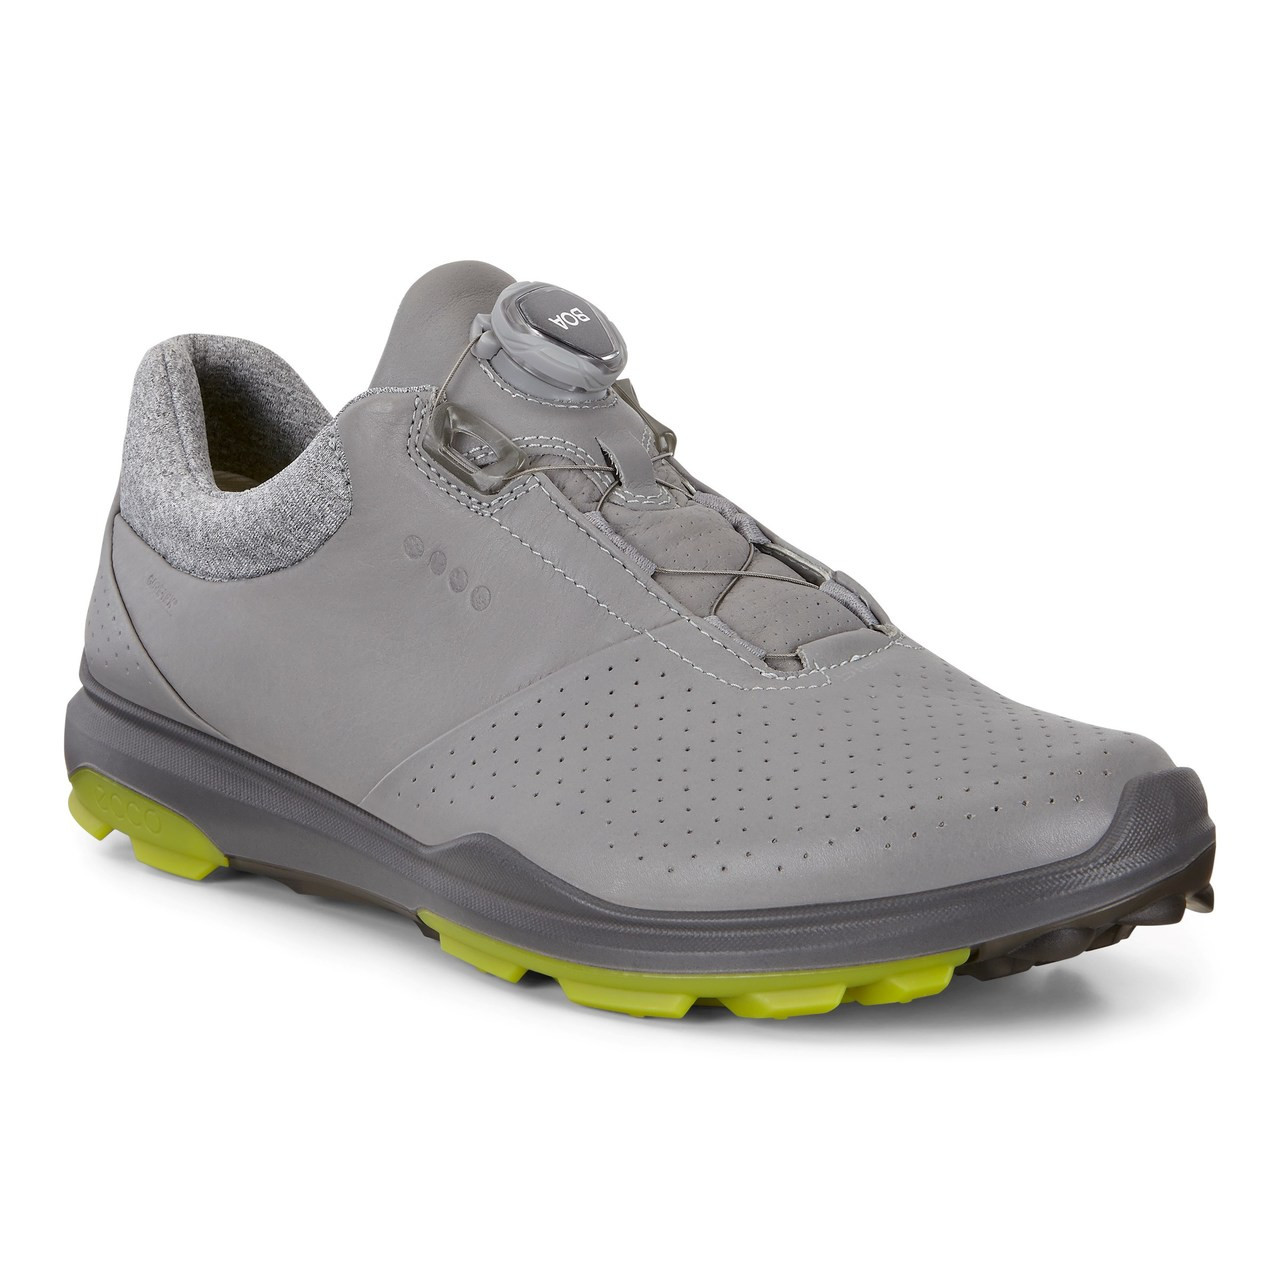 1780a9333980 Ecco Mens Biom Hybrid 3 Goretex Boa Golf Shoes Dove Kiwi Size 44 (UK ...